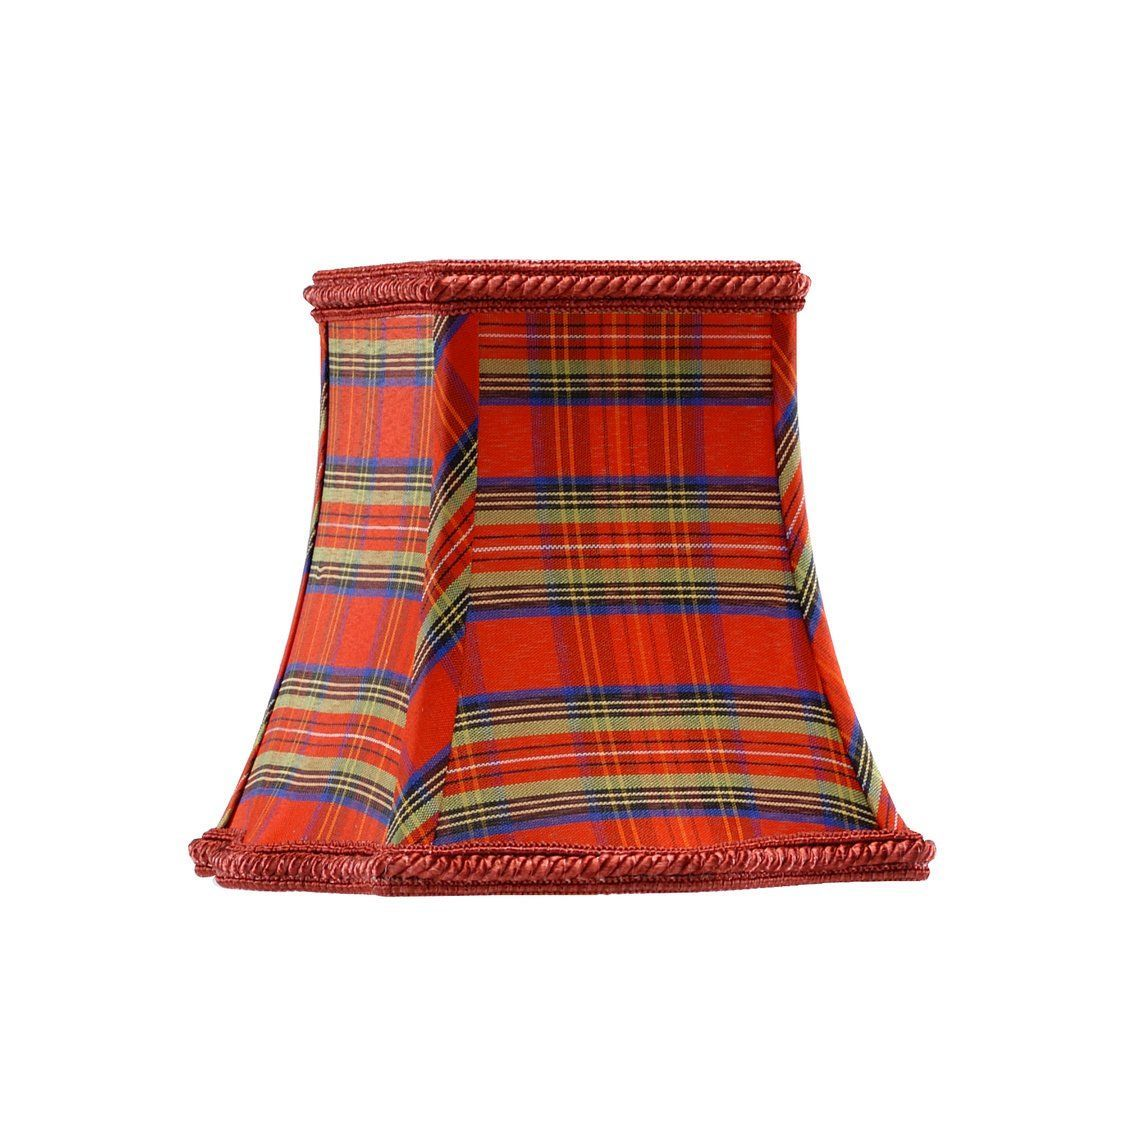 Square cabra plaid chandelier shade s6 products pinterest tartan square cabra plaid chandelier shade arubaitofo Choice Image